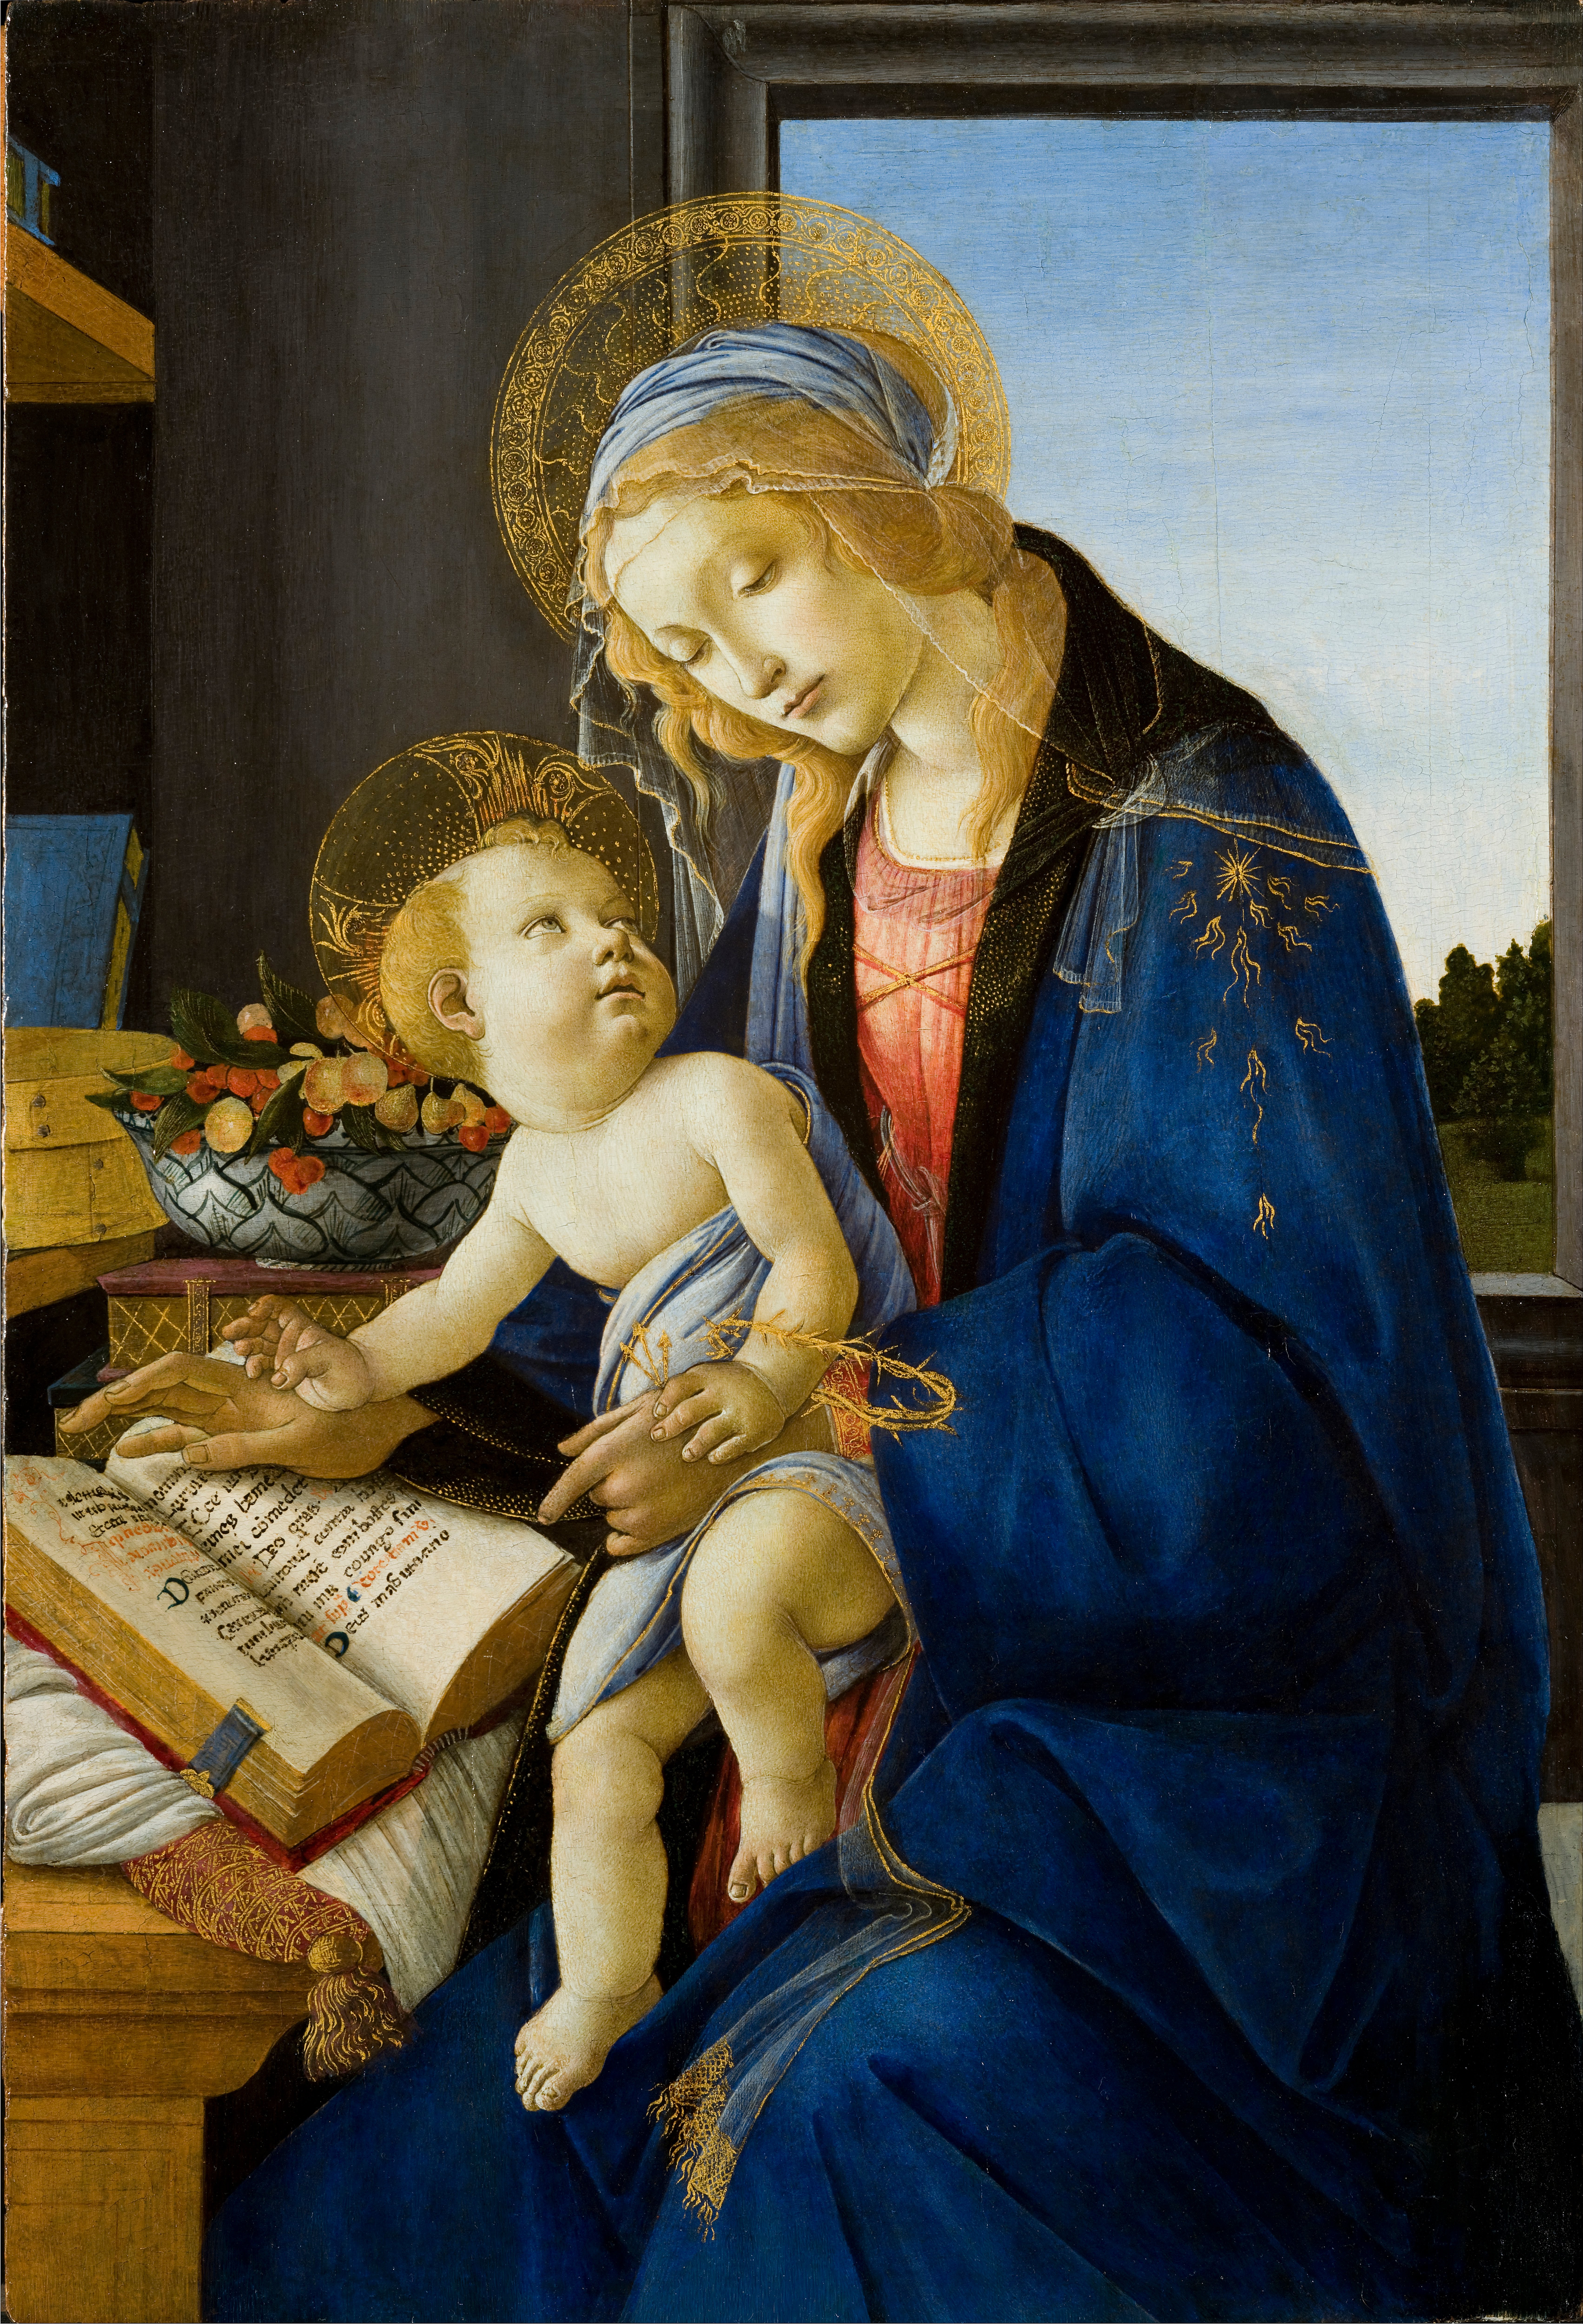 sandro_botticelli_-_the_virgin_and_child_28the_madonna_of_the_book29_-_google_art_project